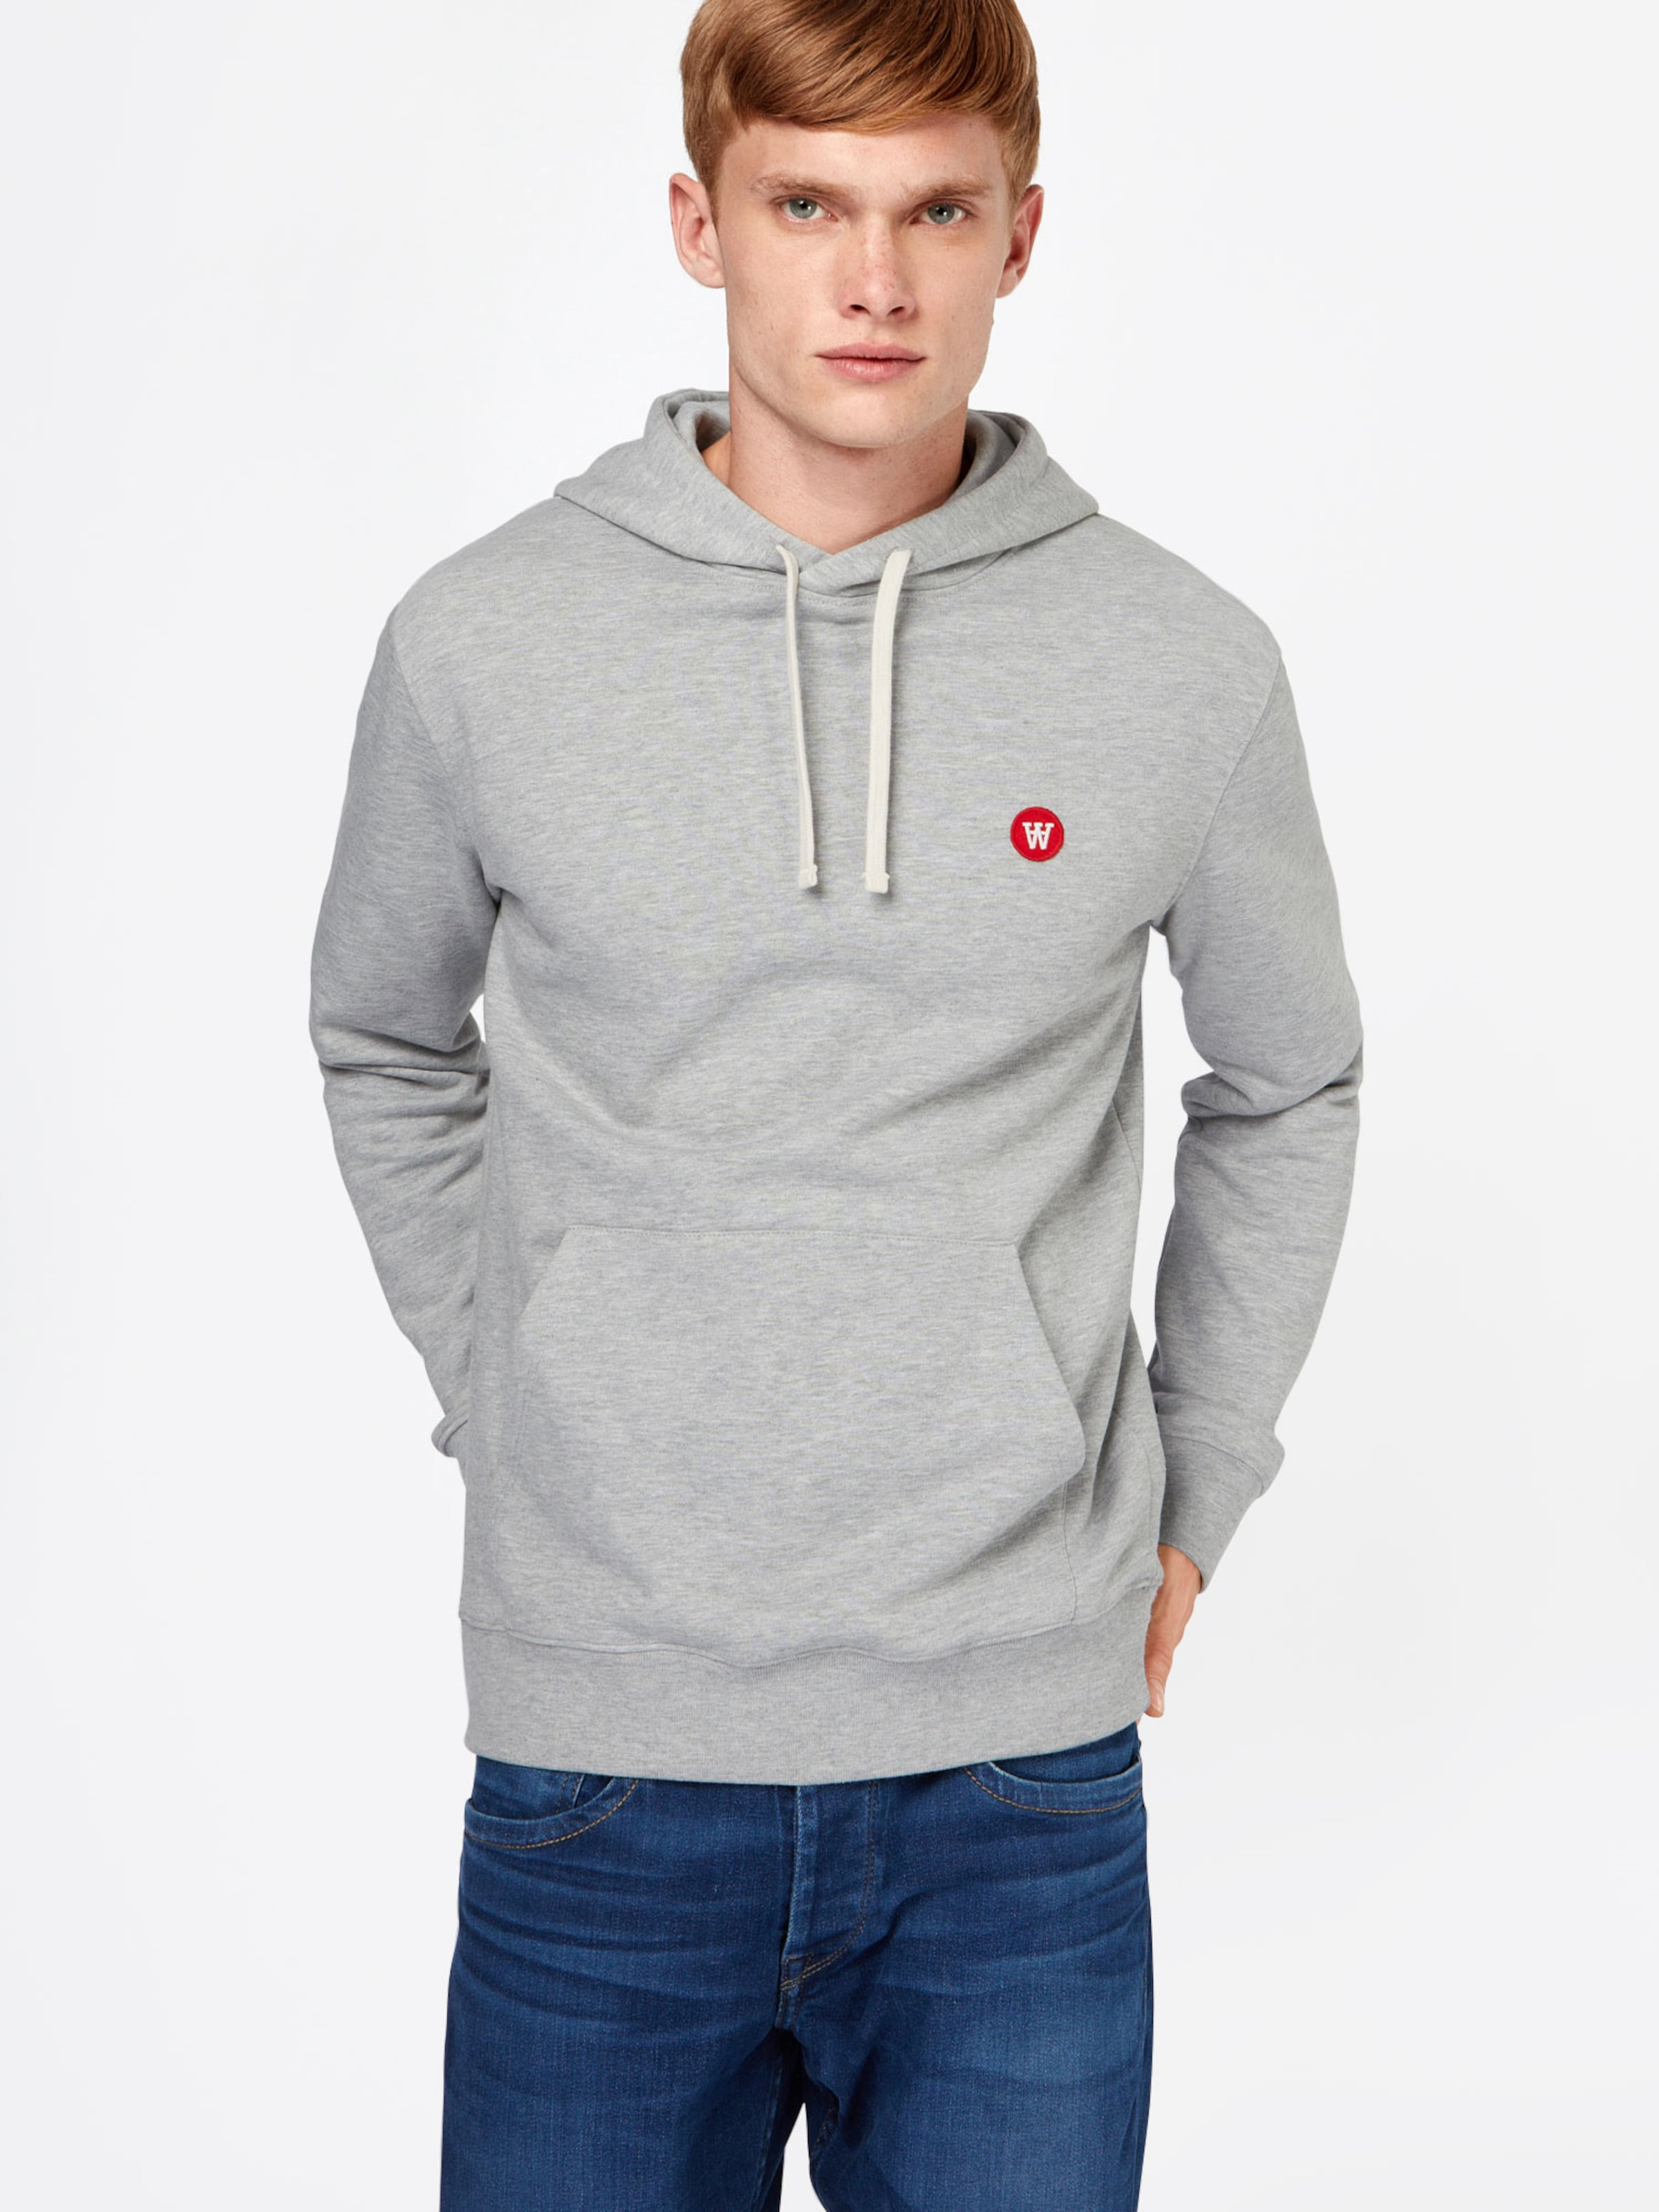 Sweat En Gris Feu Wood shirt ChinéRouge tQohrCdxsB